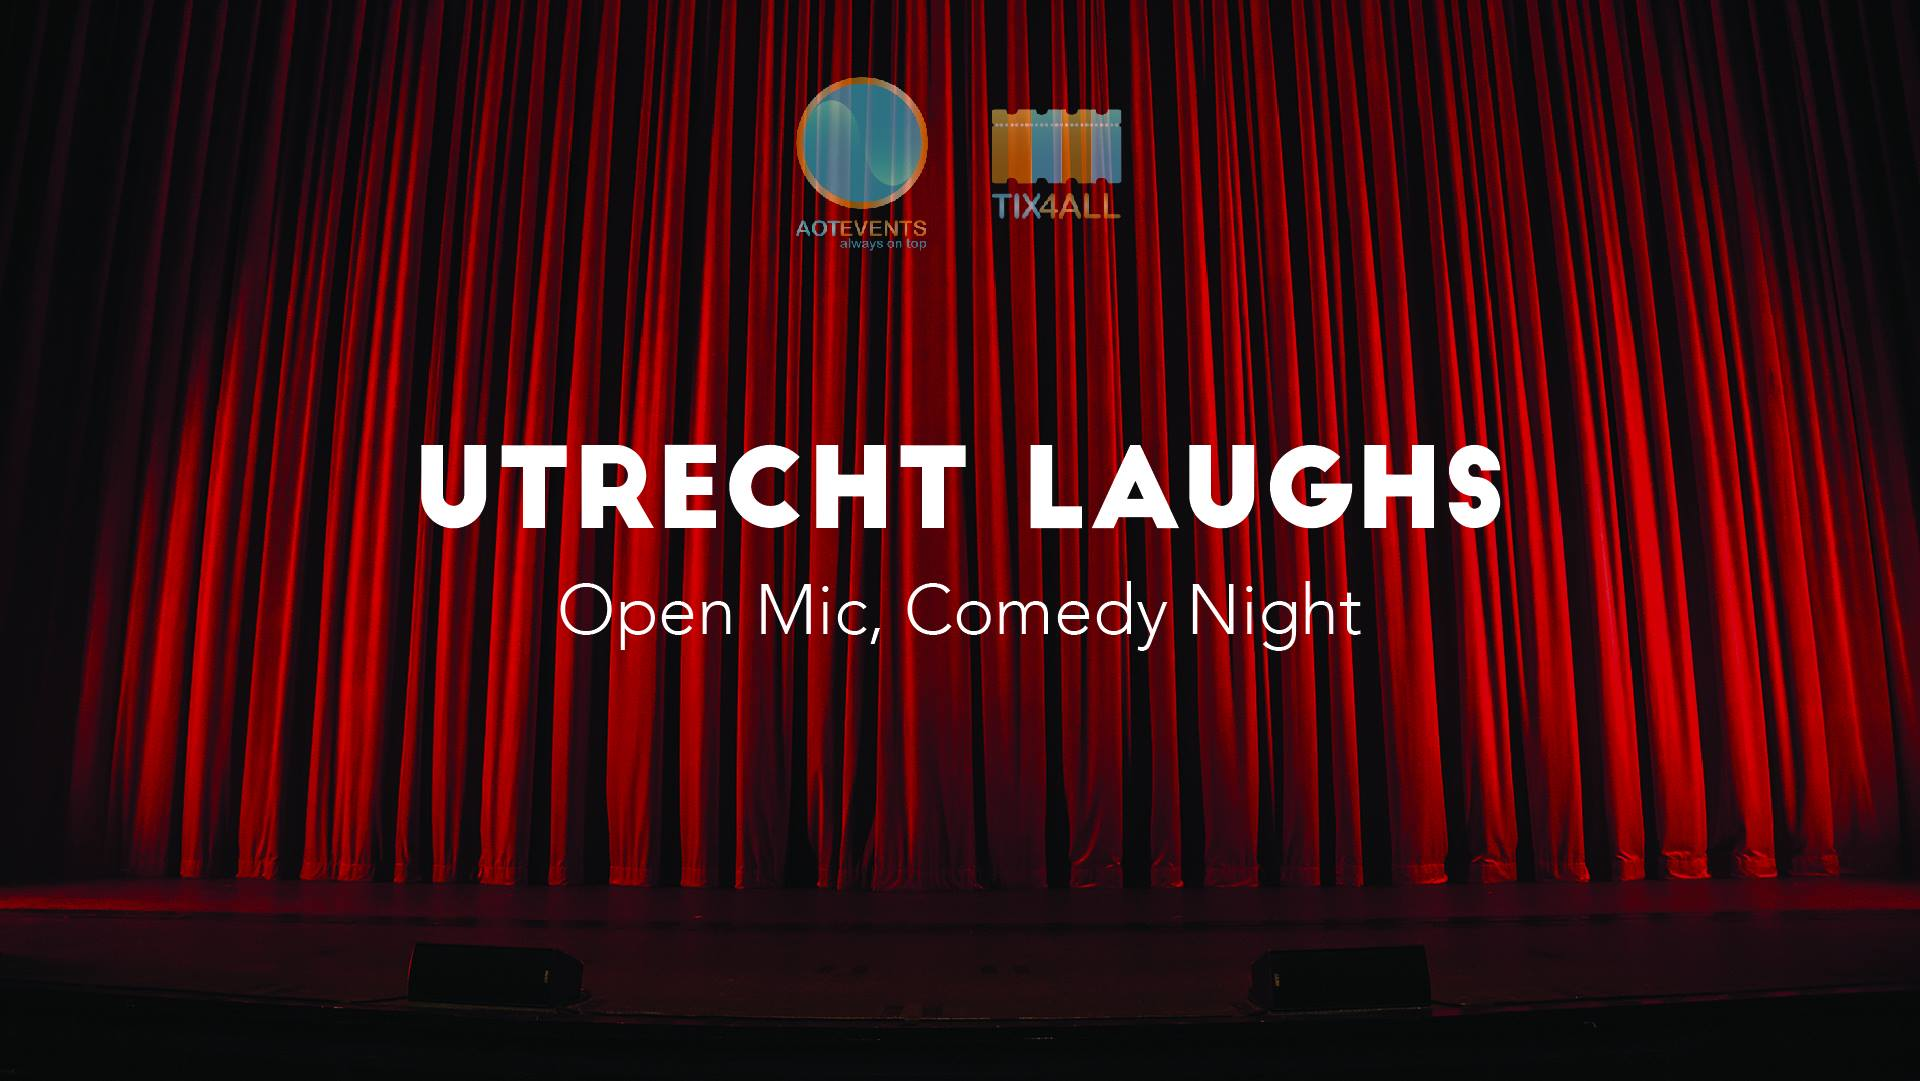 Ticket kopen voor evenement Utrecht Laughs: Try-out, Comedy Night (ENG)